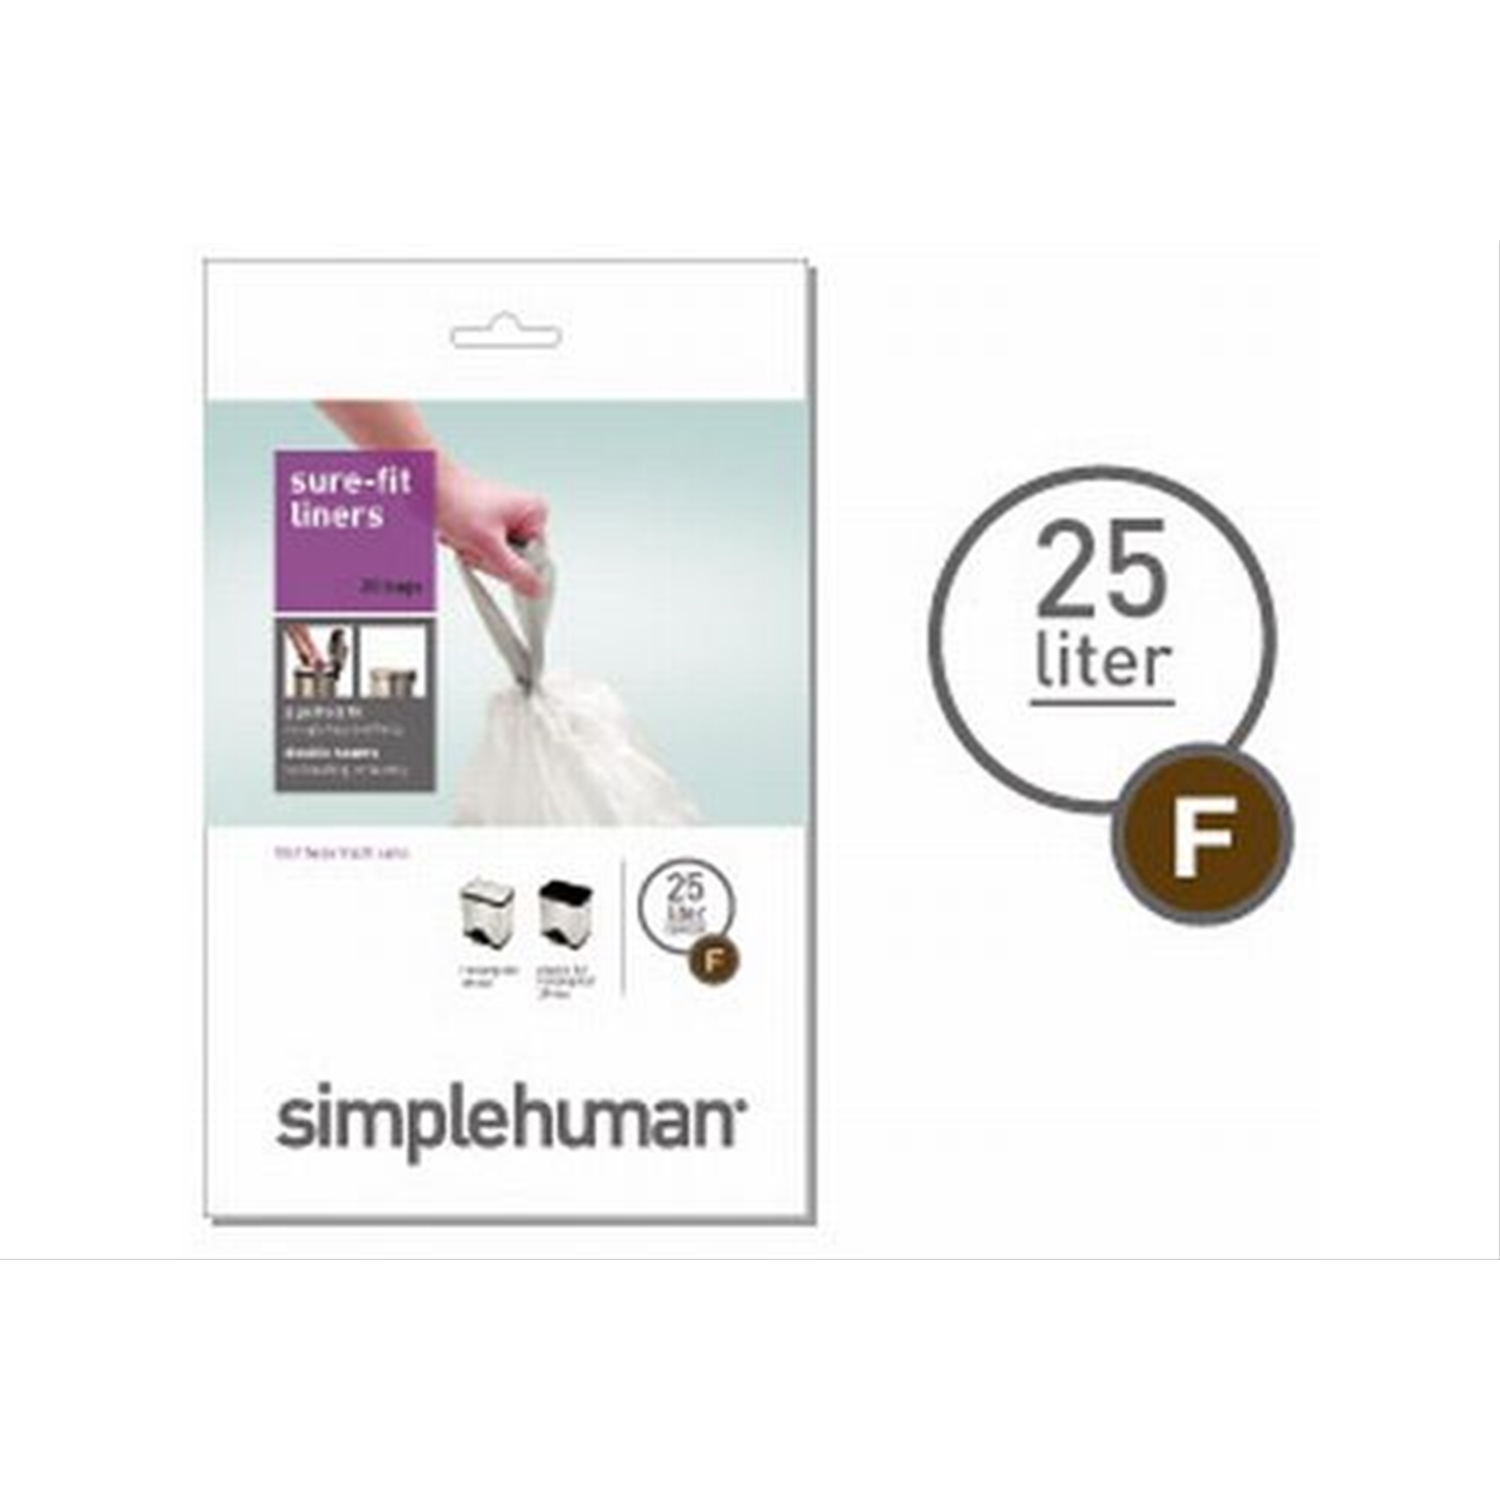 Image of Simplehuman Bin Liners 25L, Code F, (Pack of 20)